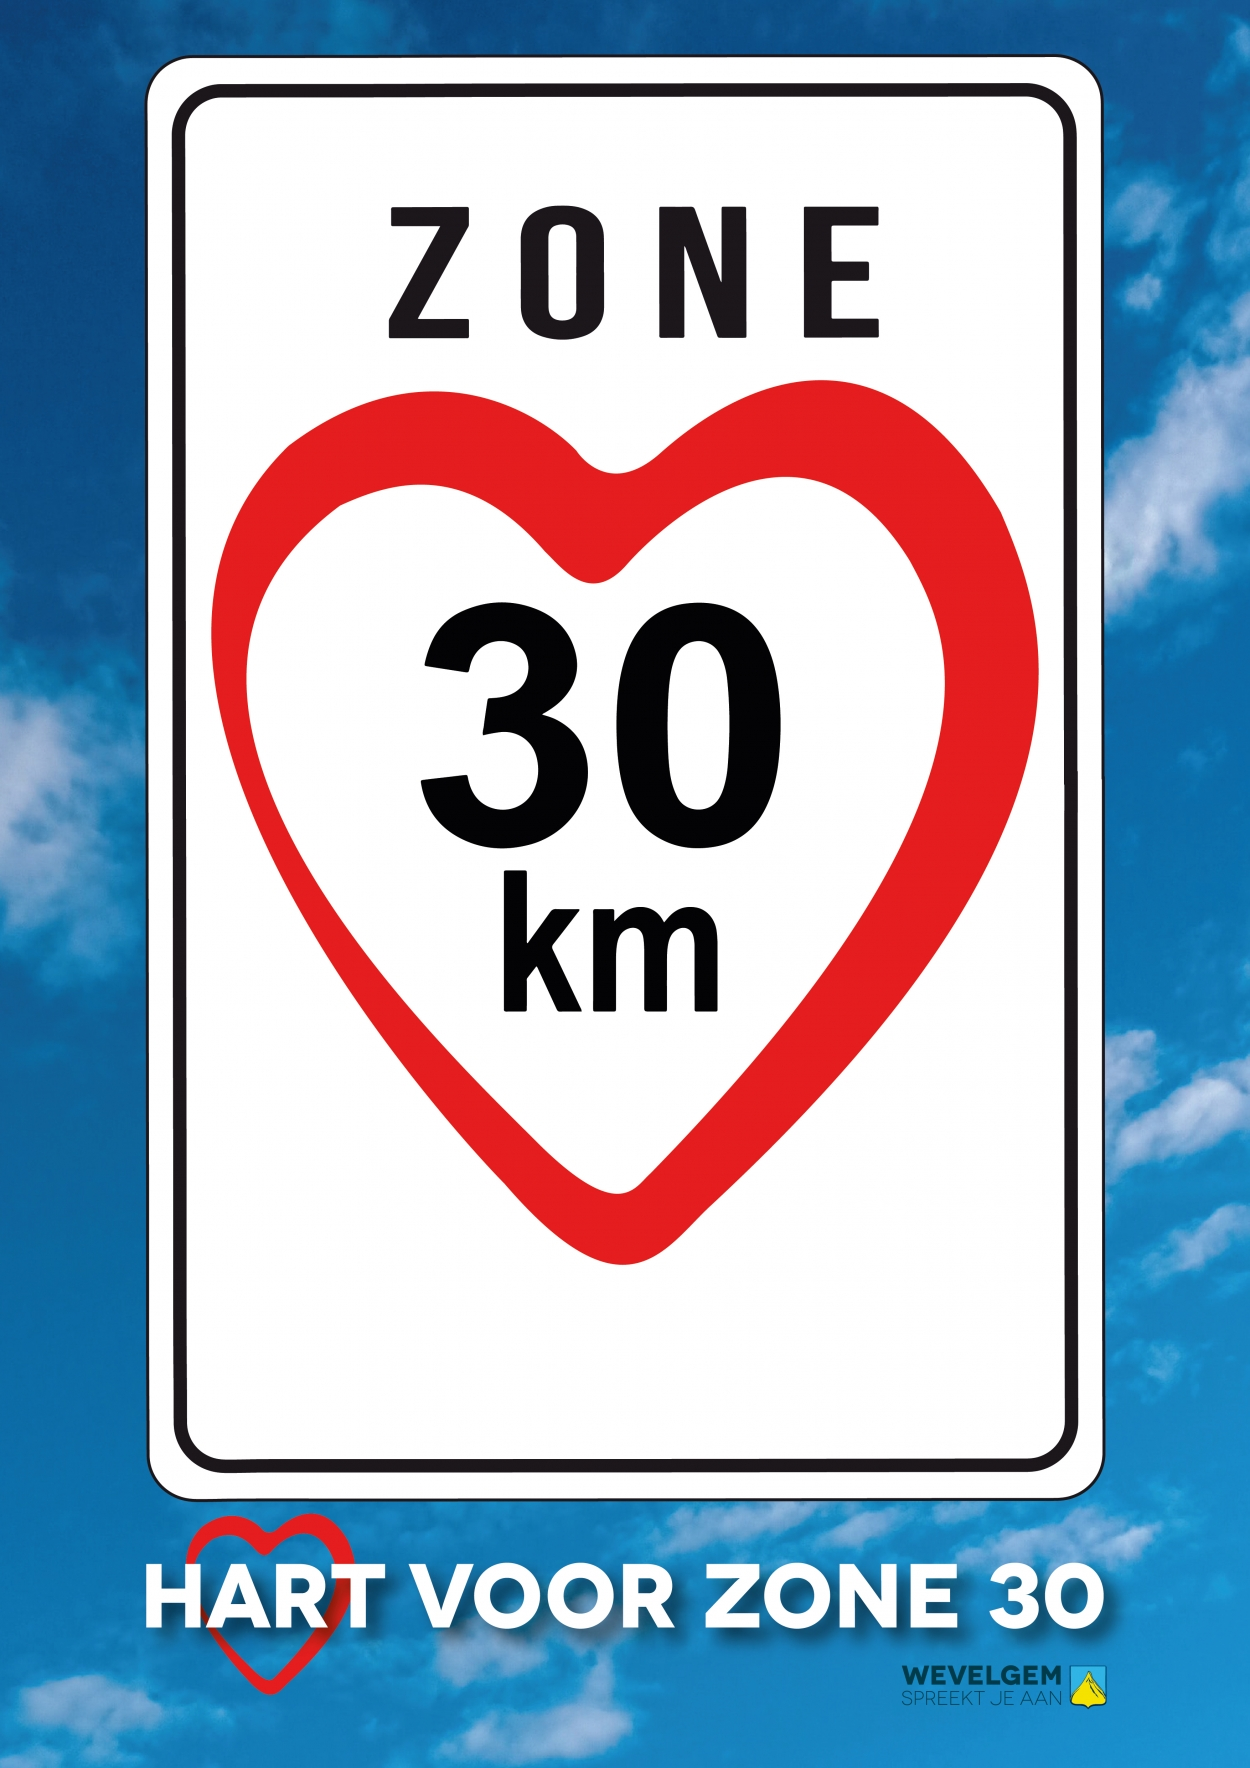 affiche a3 hart voor zone 30